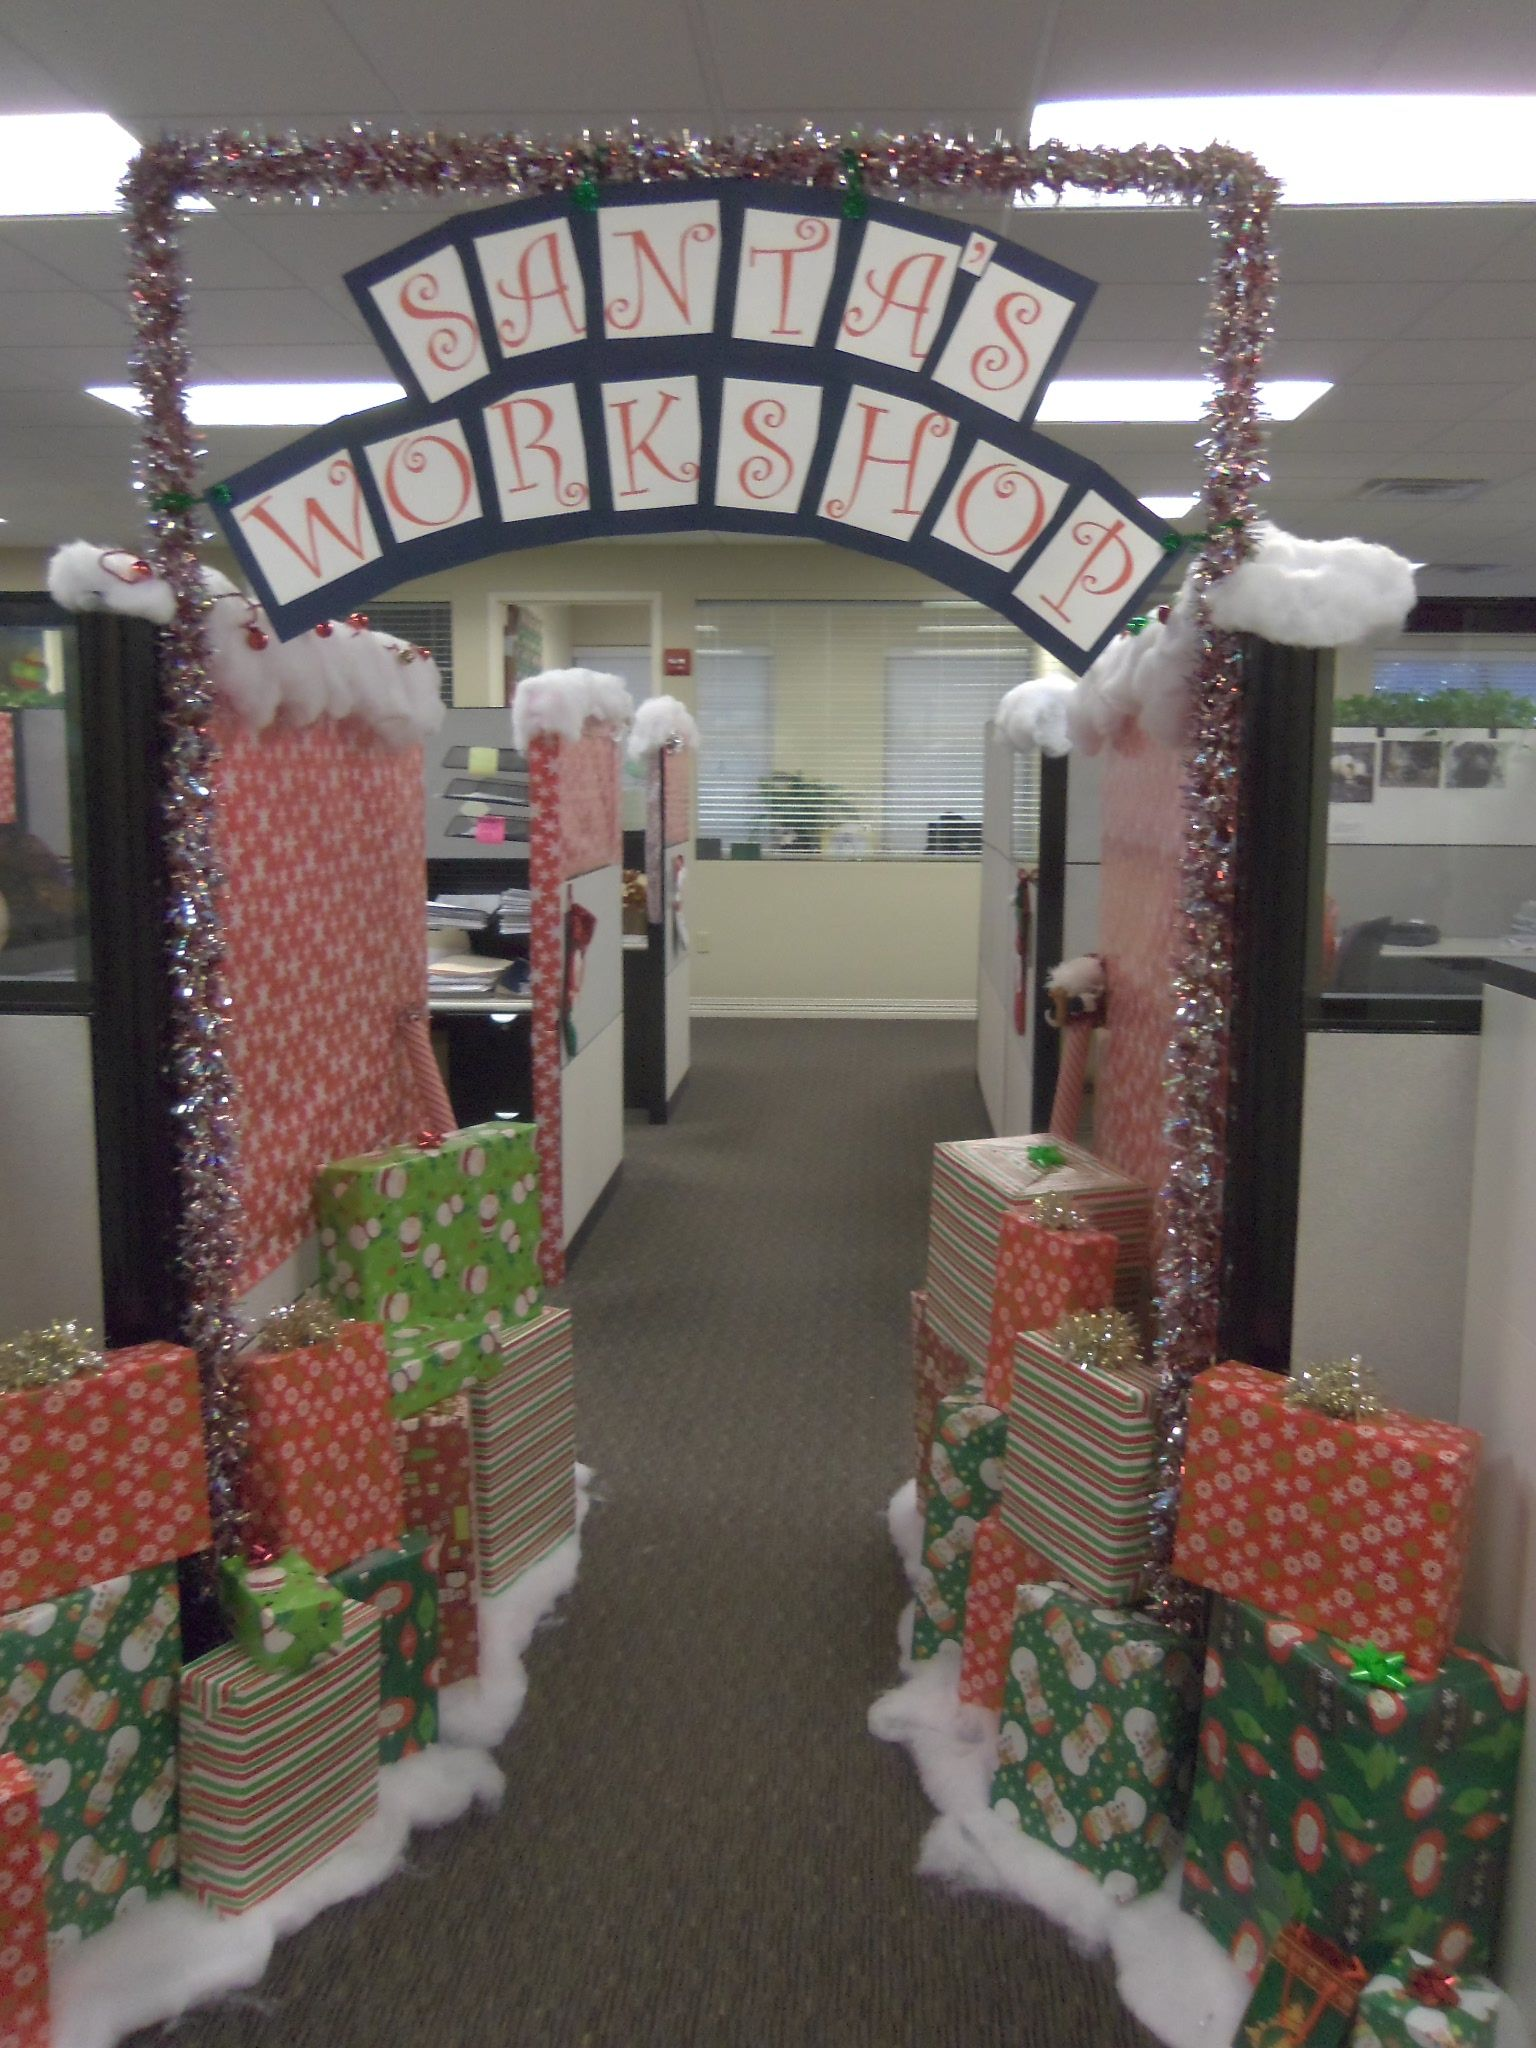 christmas decorations for the office. Brilliant Decorations Christmas Decorations Can Boost Morale At The Office Leland Management  Embraces Season And Encourages Holiday Spirit In Decorations For The Office